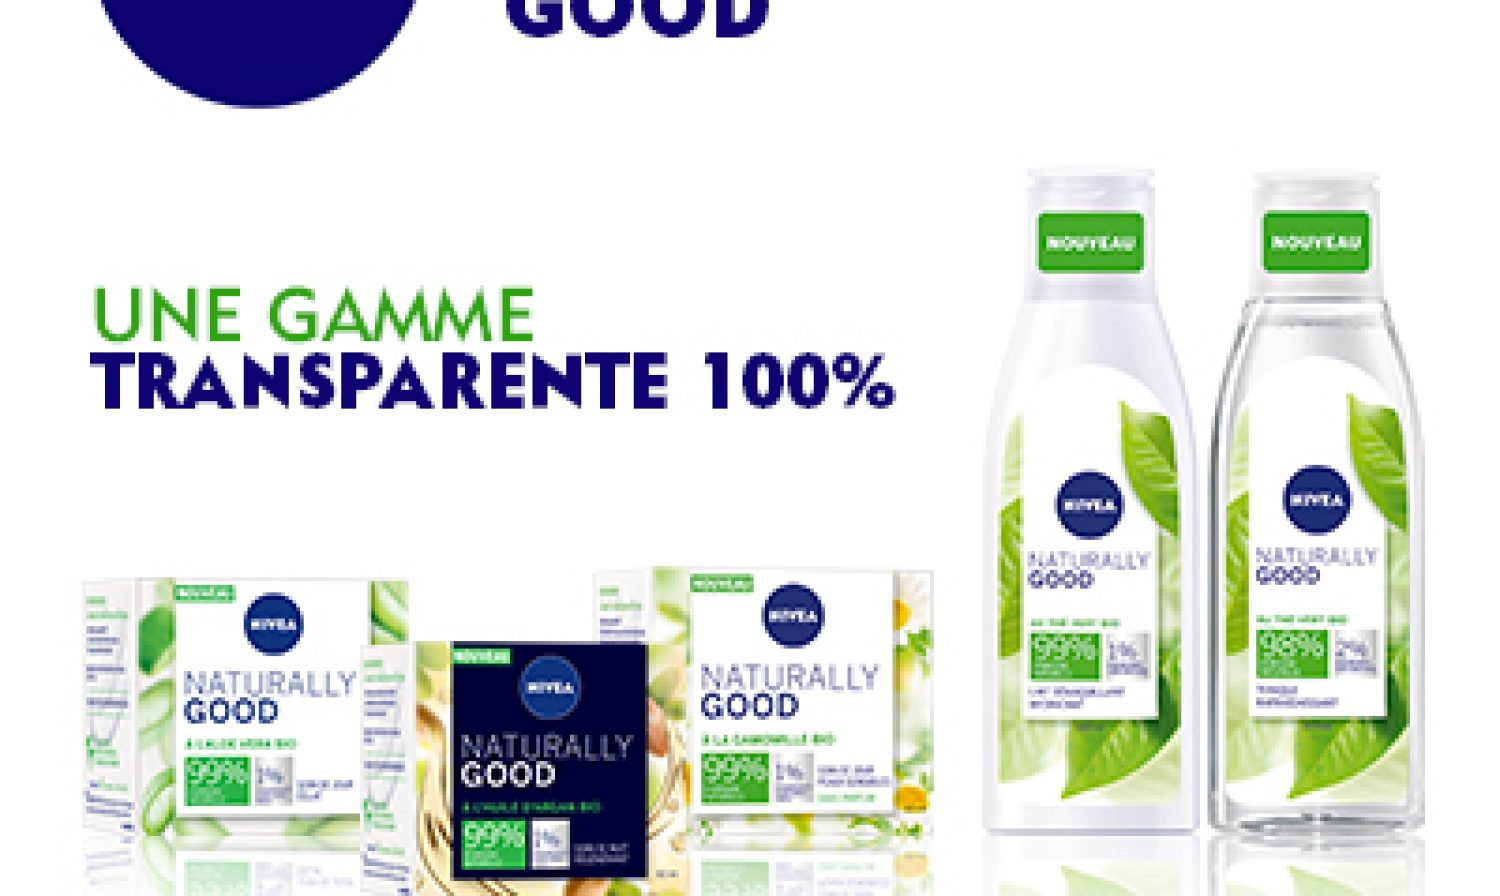 200 Naturally Good de Nivea à tester sur beaute-test.com